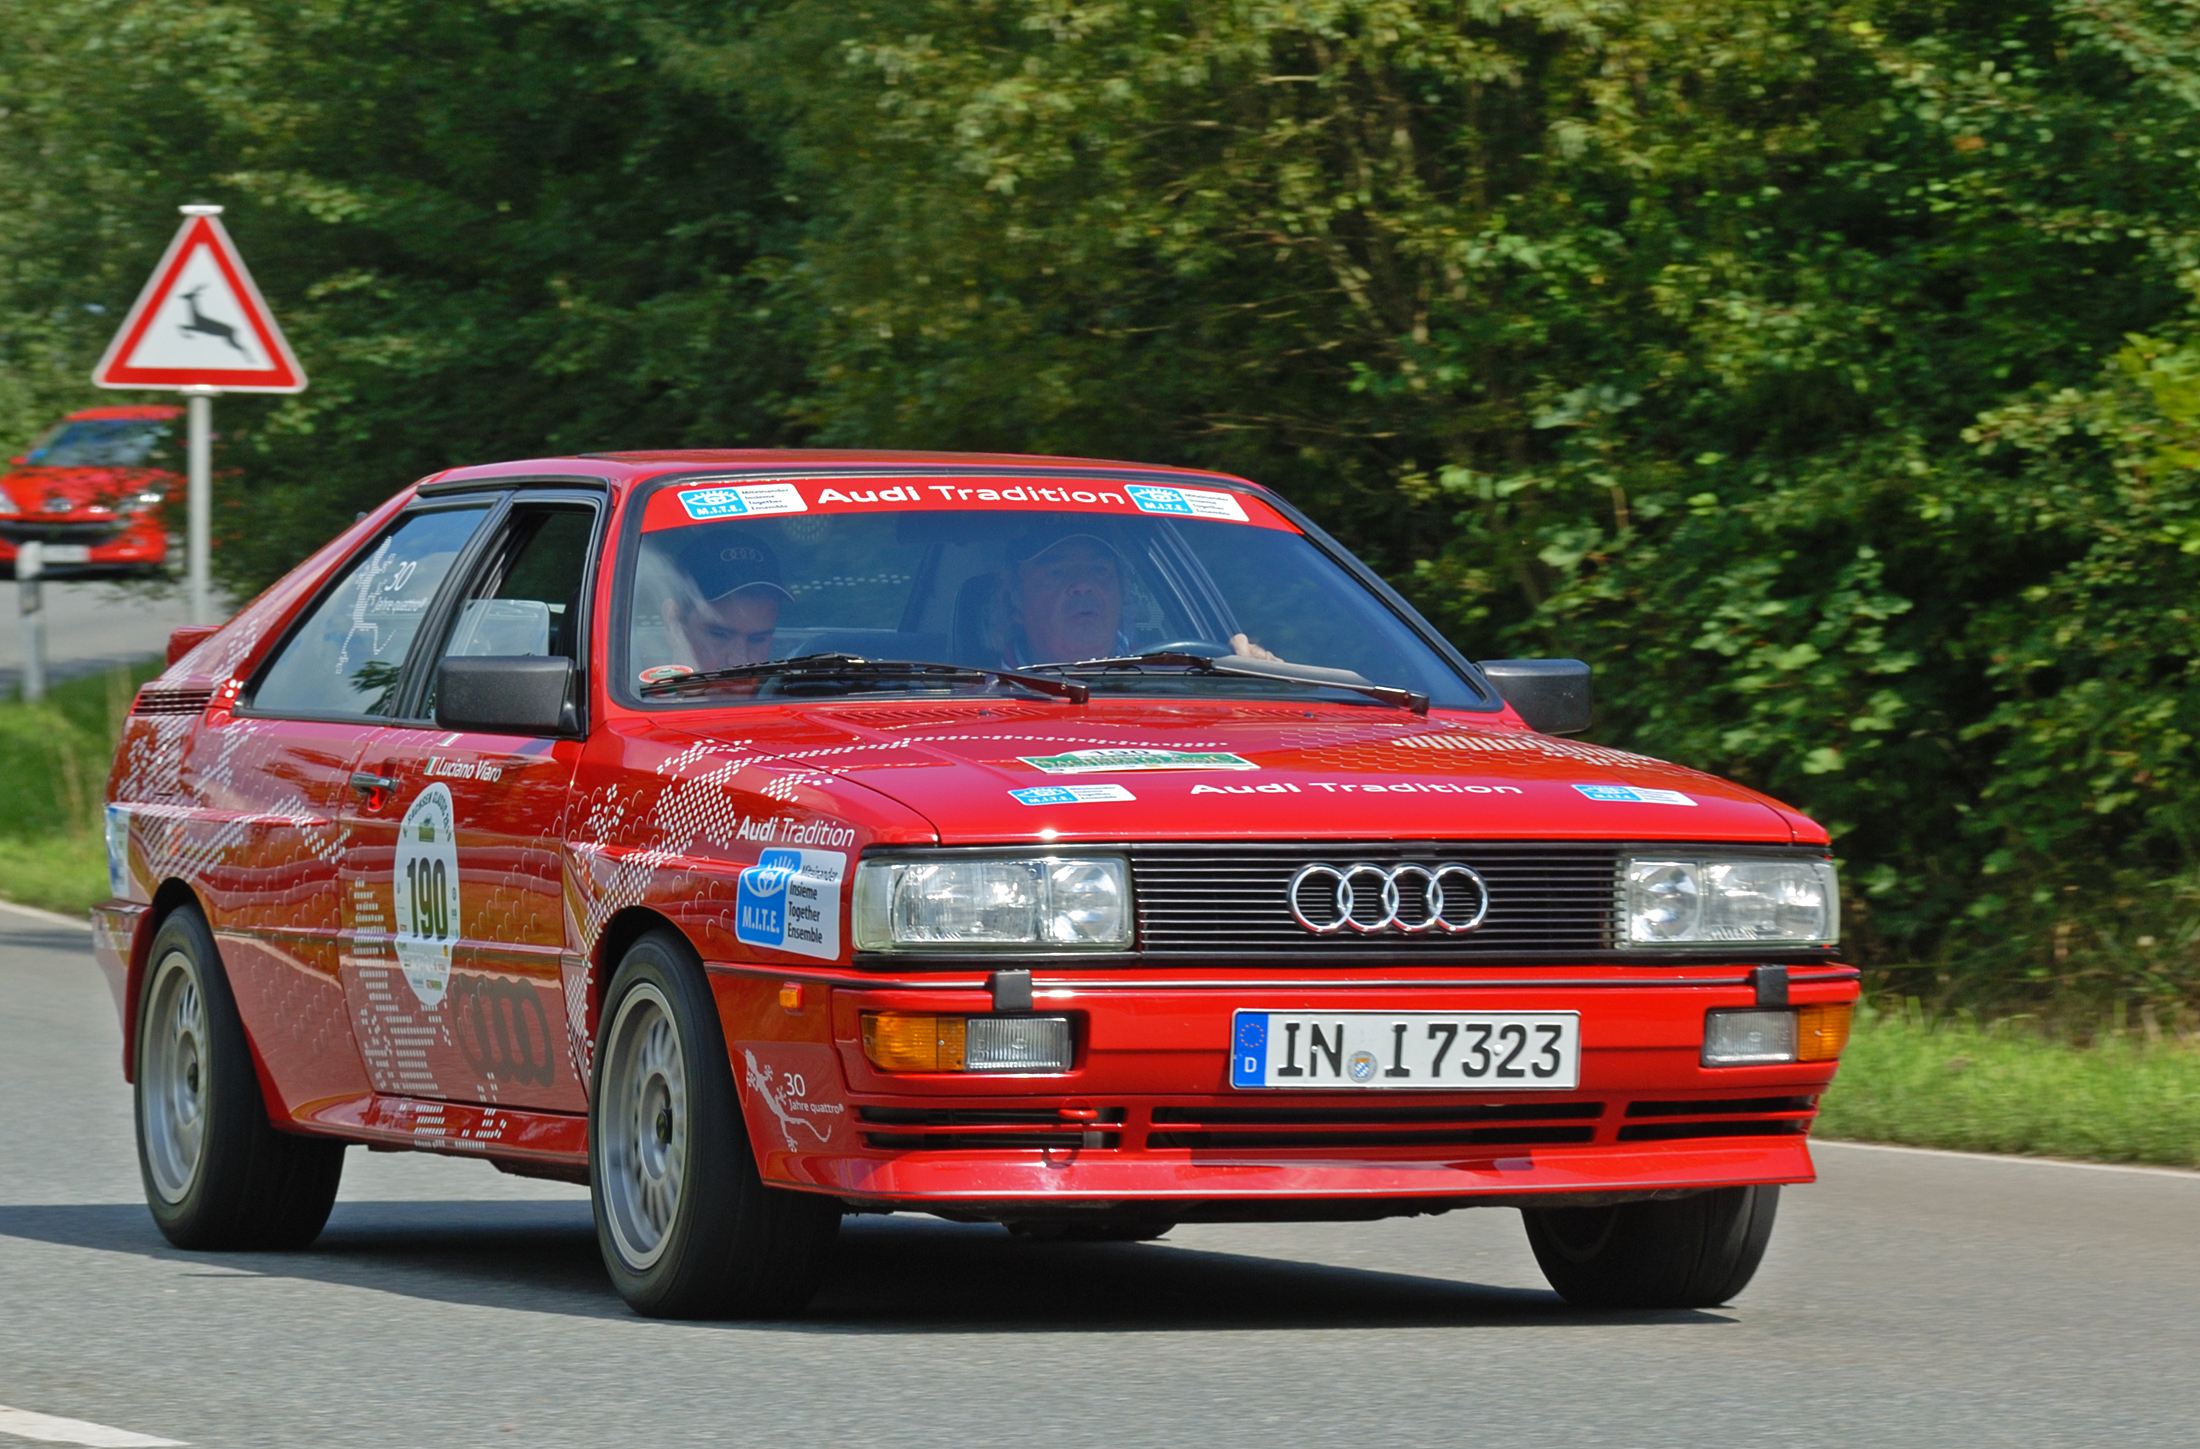 Classic Rally Cars For Sale Uk